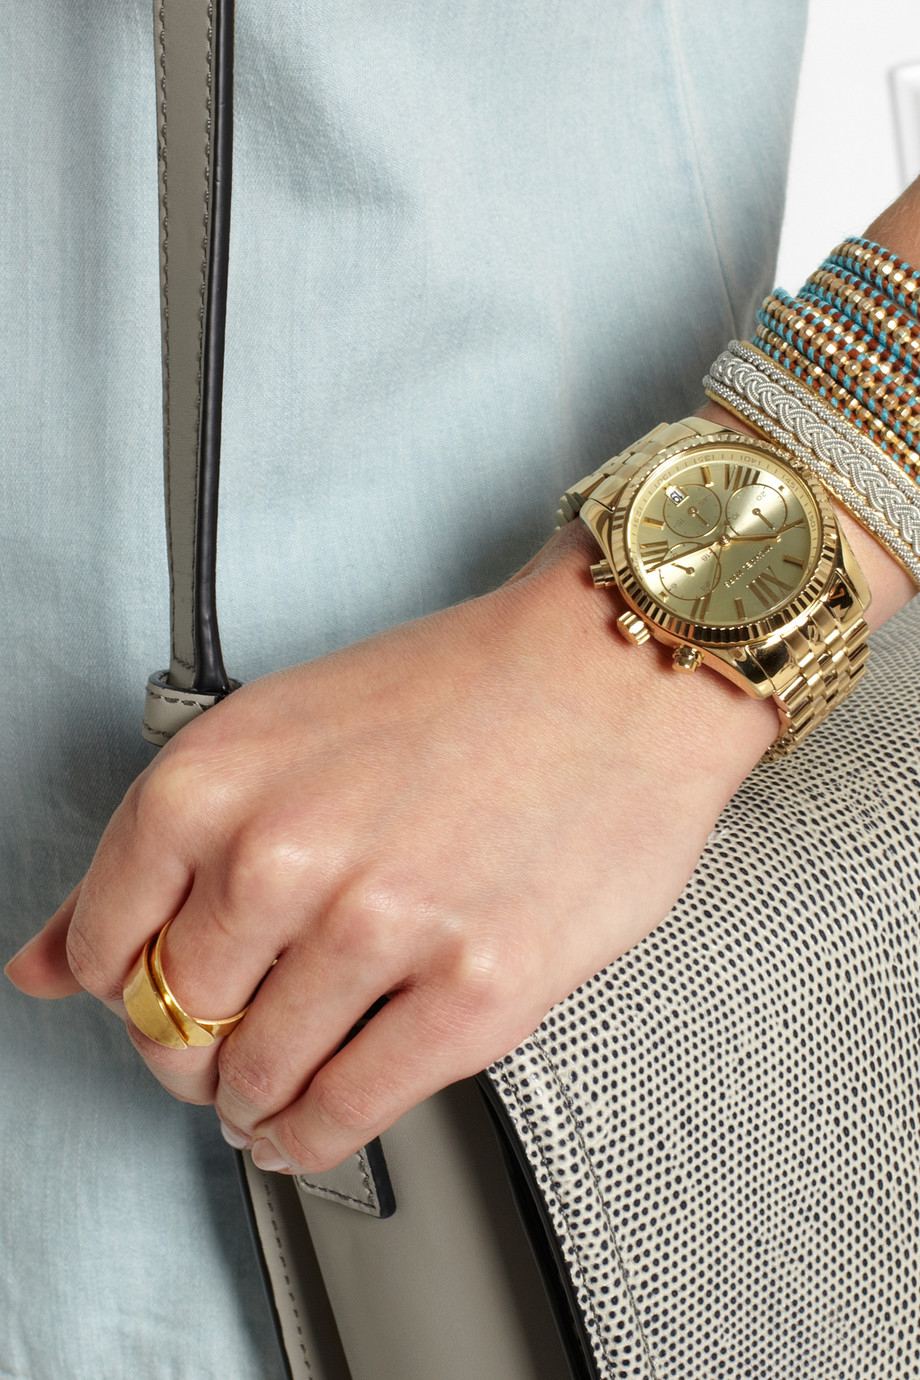 bce5986f06b8 Gallery. Previously sold at: NET-A-PORTER · Women's Gold Watches Women's Michael  Kors Lexington